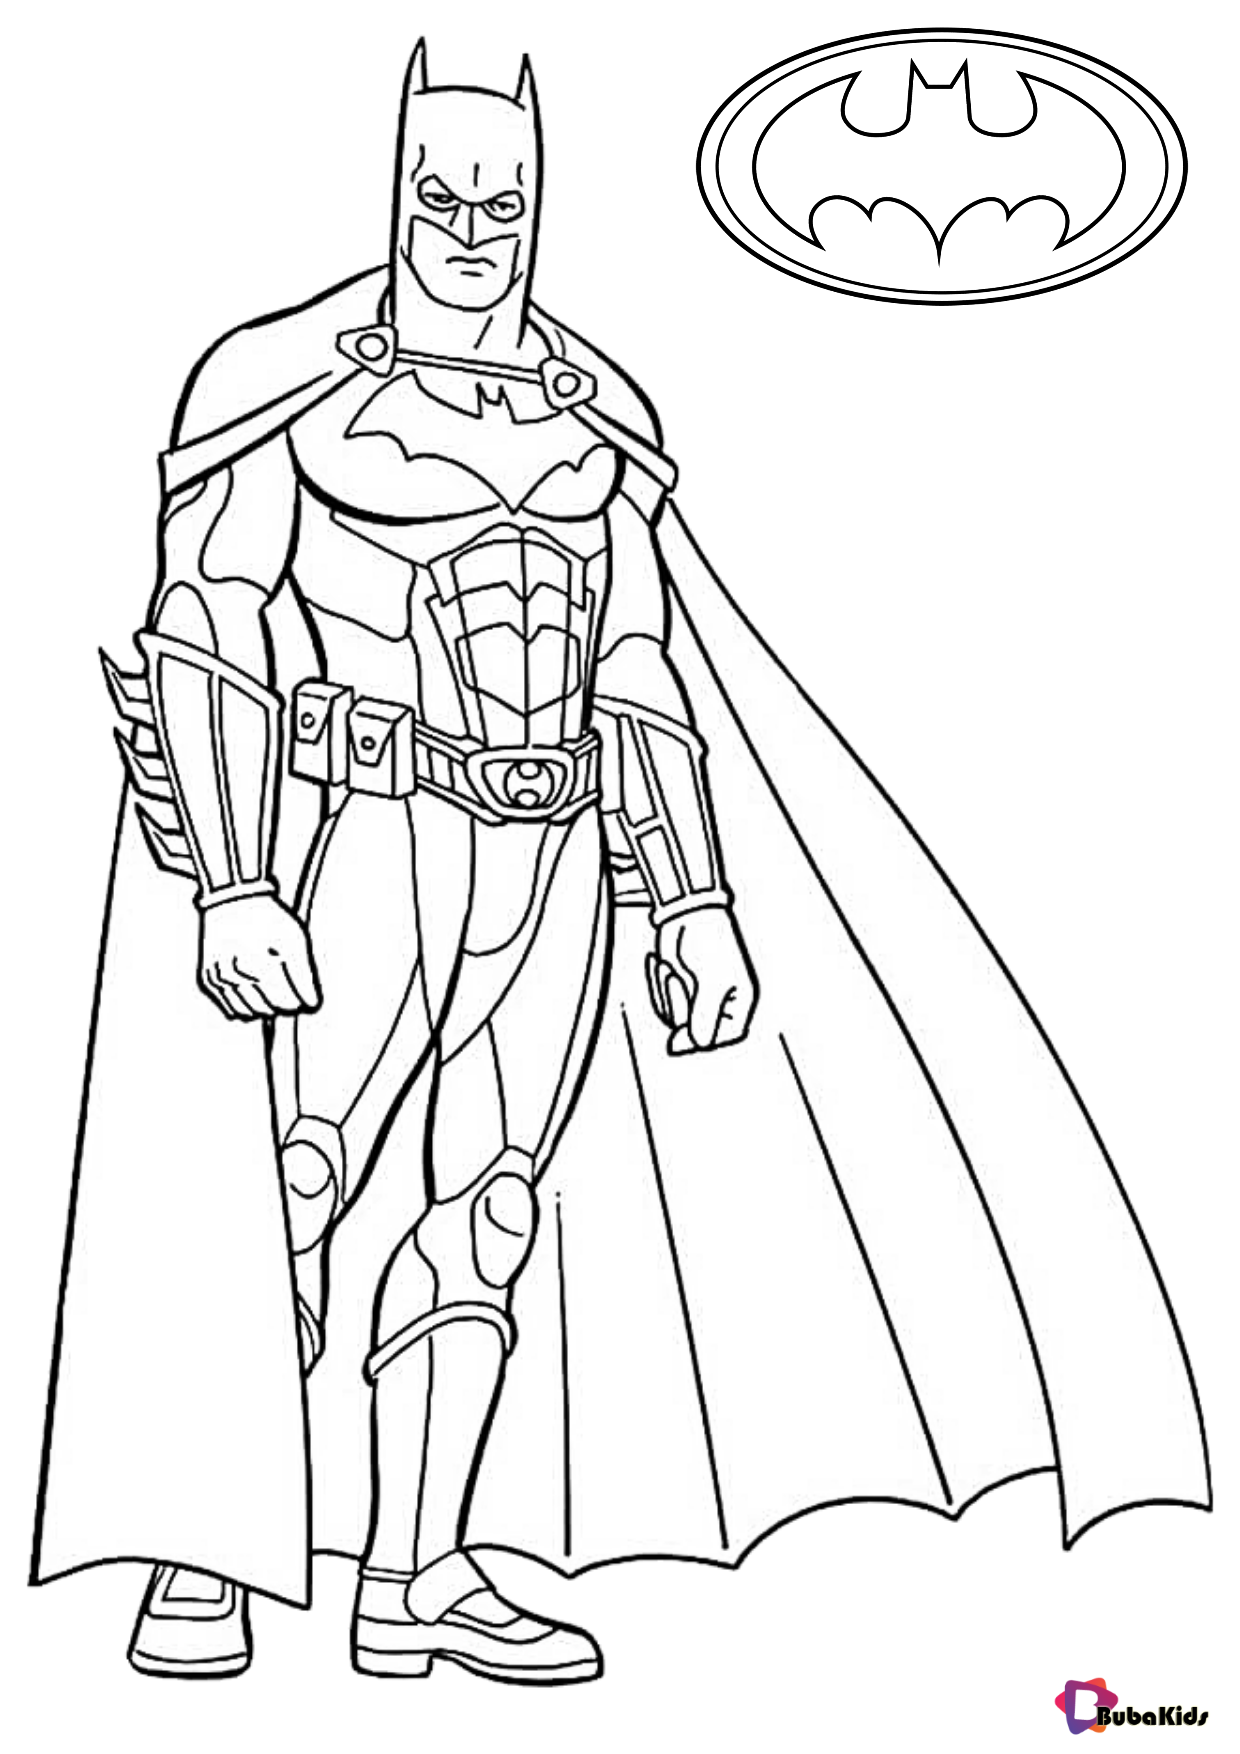 Free Download Batman Superhero Coloring Sheet For Kids Collection Of Cartoon Coloring Pages F Superman Coloring Pages Batman Coloring Pages Superhero Coloring